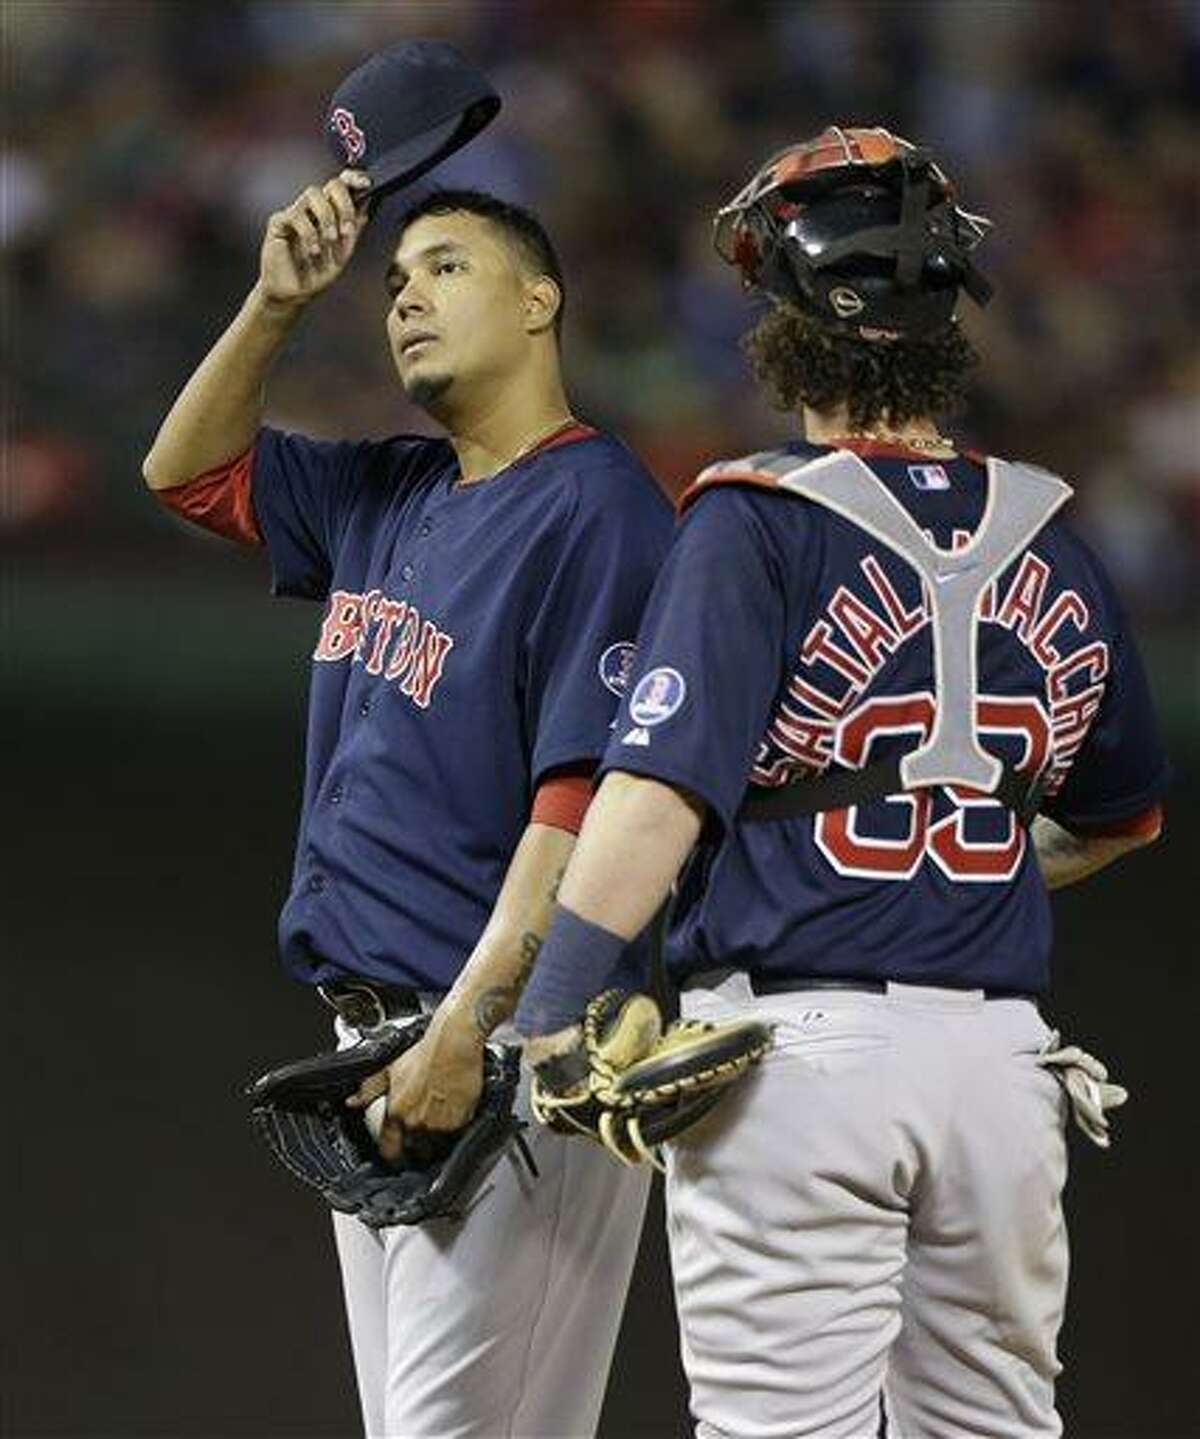 Boston Red Sox starting pitcher Felix Doubront, left, takes off his cap and looks up next to catcher Jarrod Saltalamacchia after giving up five runs to the Texas Rangers during the fourth inning of a baseball game Friday, May 3, 2013, in Arlington, Texas. (AP Photo/LM Otero)